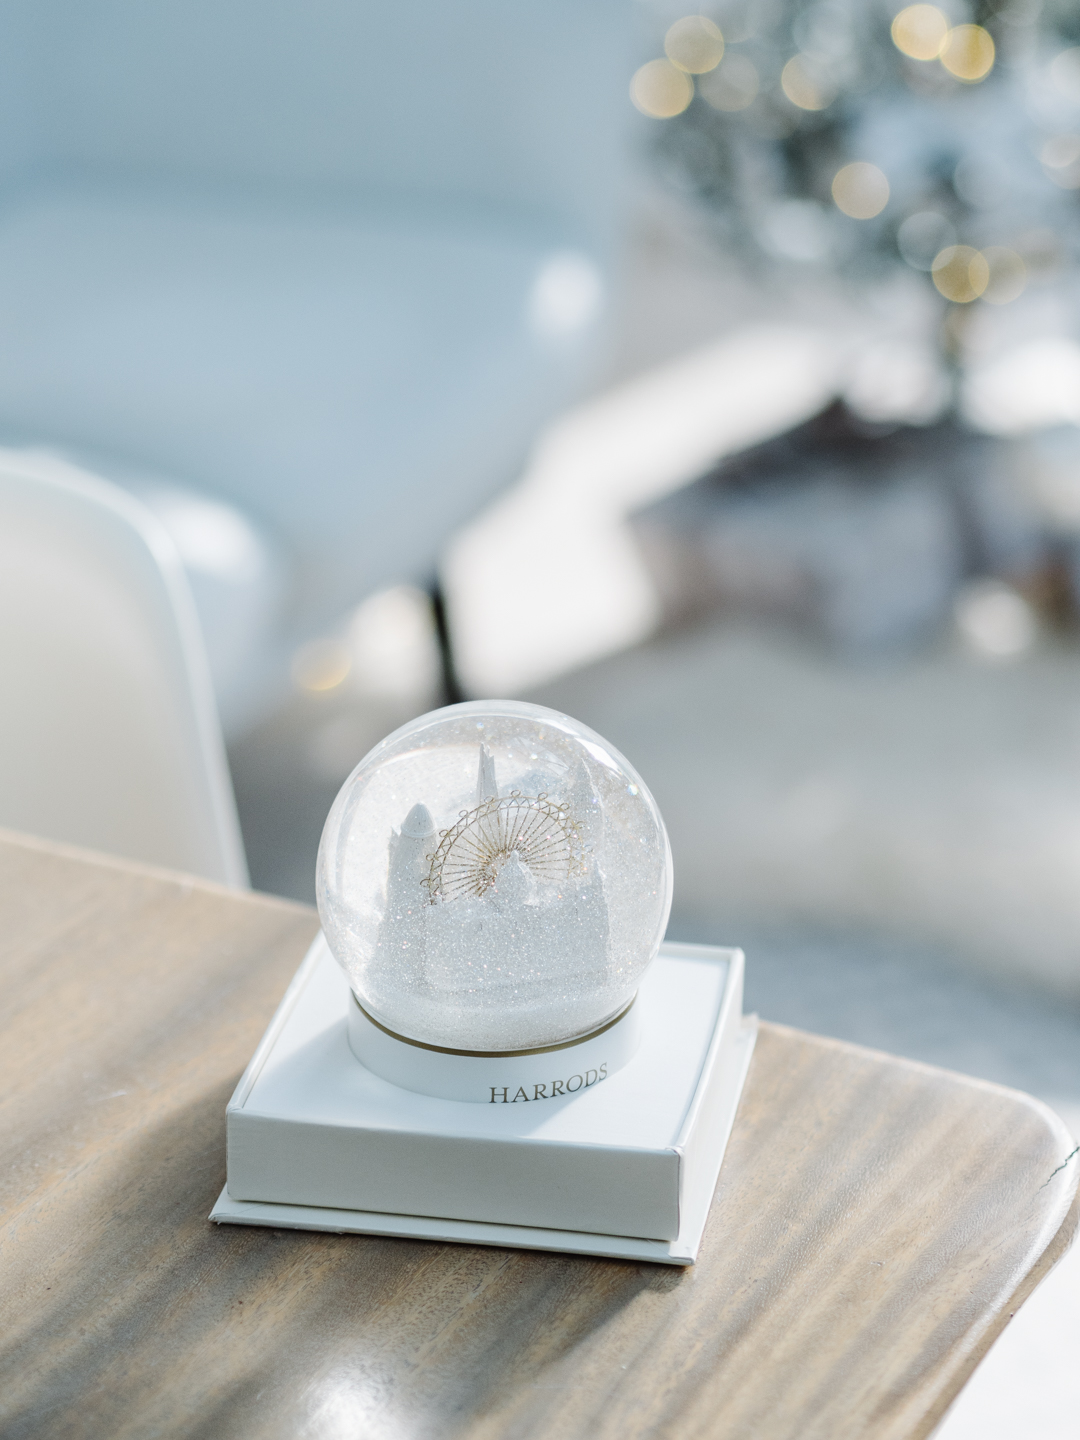 New Christmas traditions - Harrods snow globe